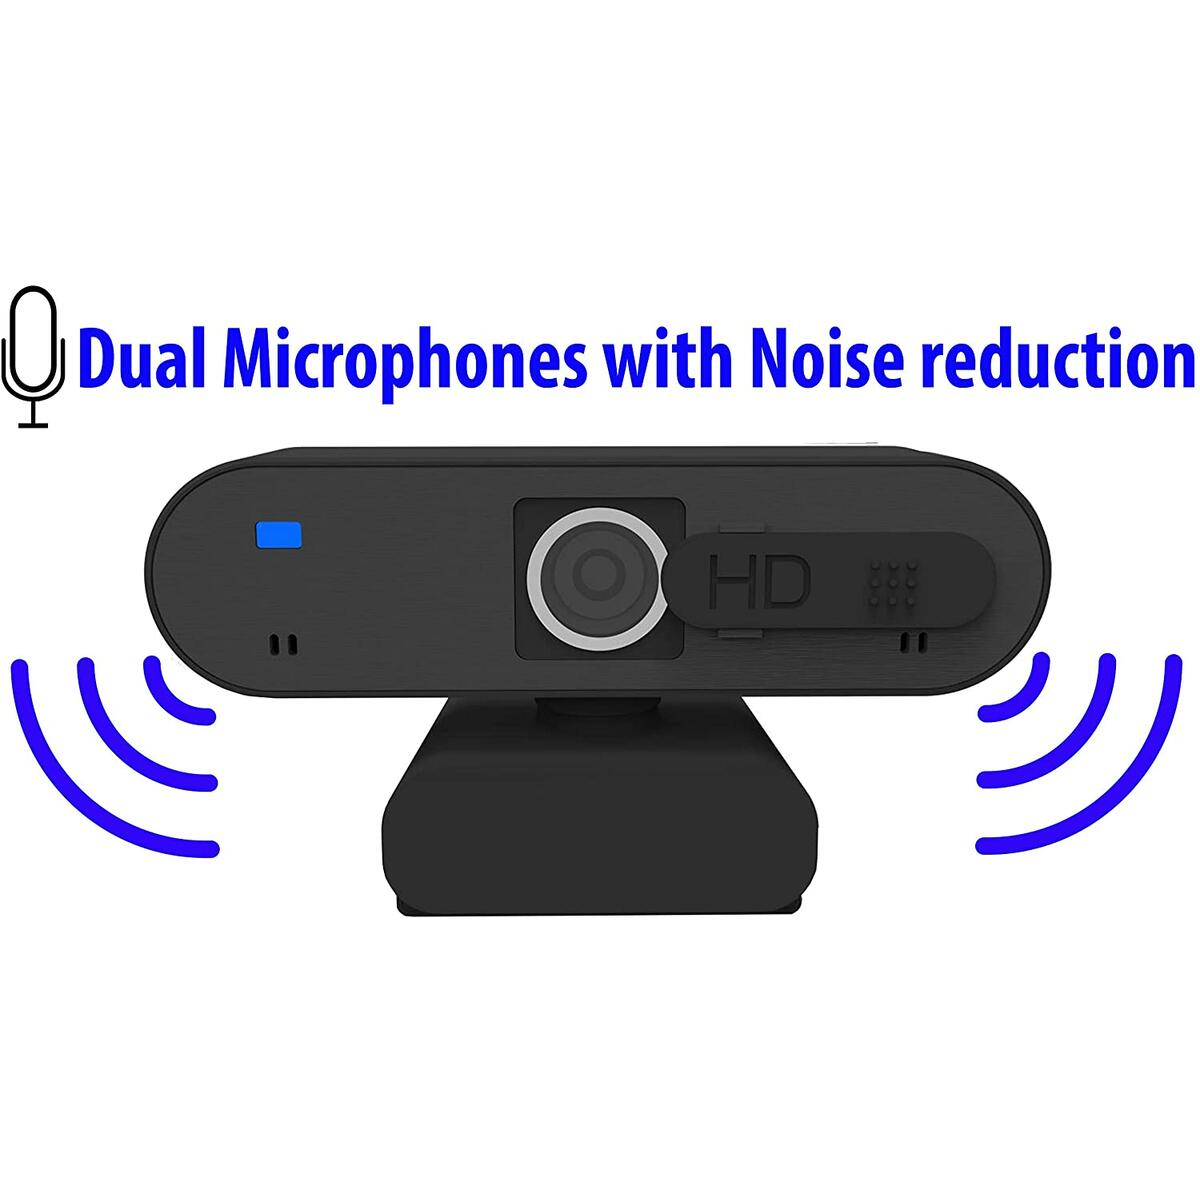 Webcam with Microphone - Computer Camera Full HD Webcam 1080P with Privacy Cover, Widescreen USB Web Cameras for Computers for Streaming, Skype, Video Conference, Suitable for MAC Laptop Desktop